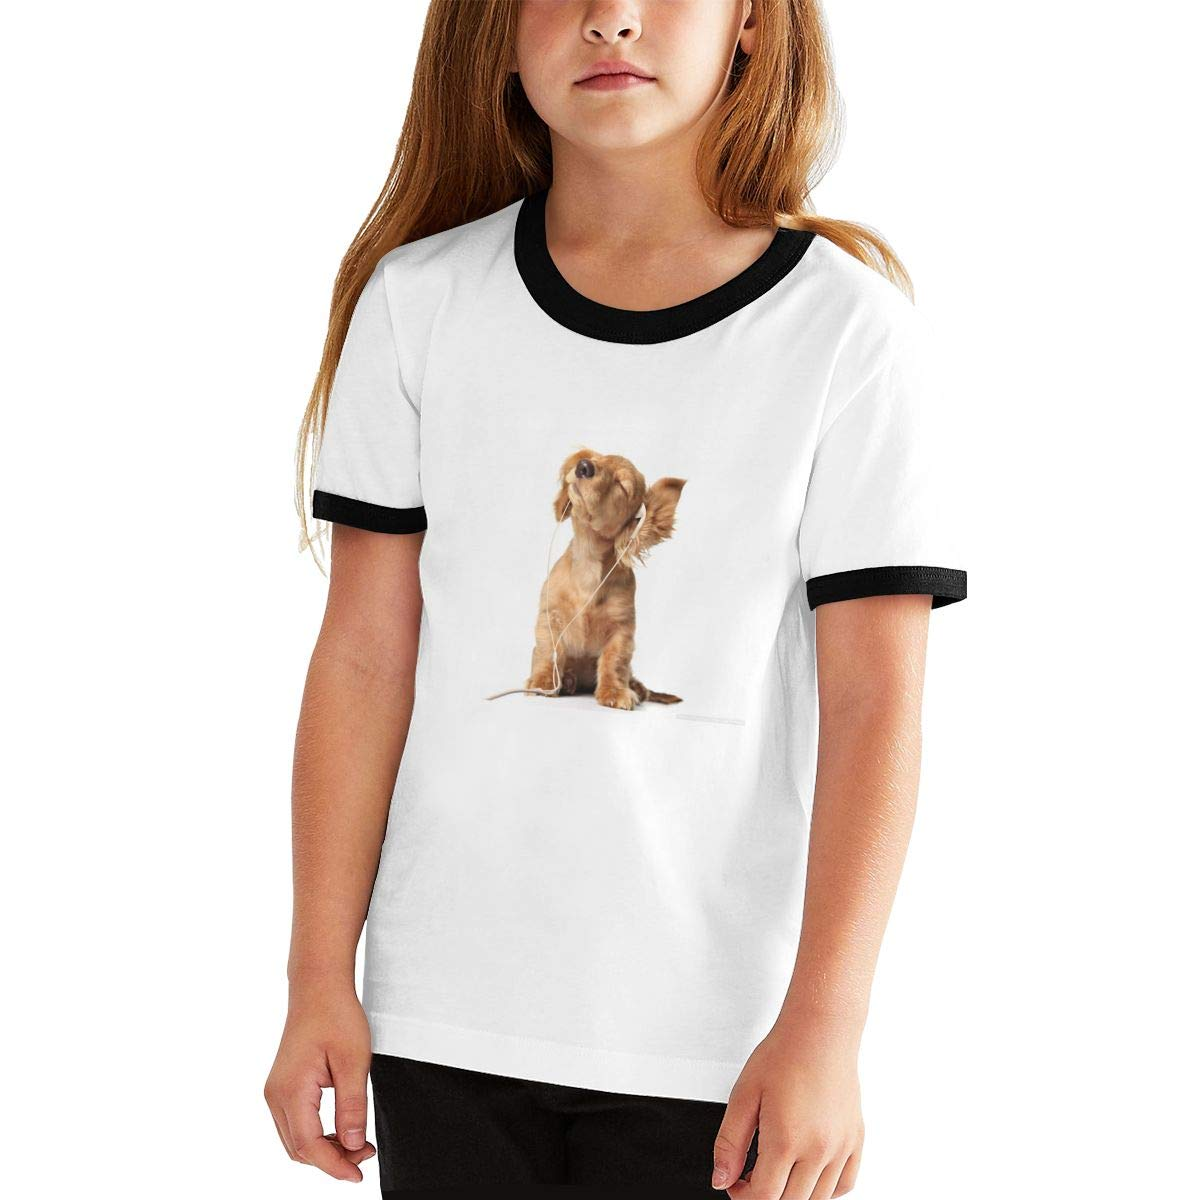 Youth Printed Boys Girls Cute Dogs Puppy Teens Short Sleeve T-Shirt Tees Shirts Tops Sport